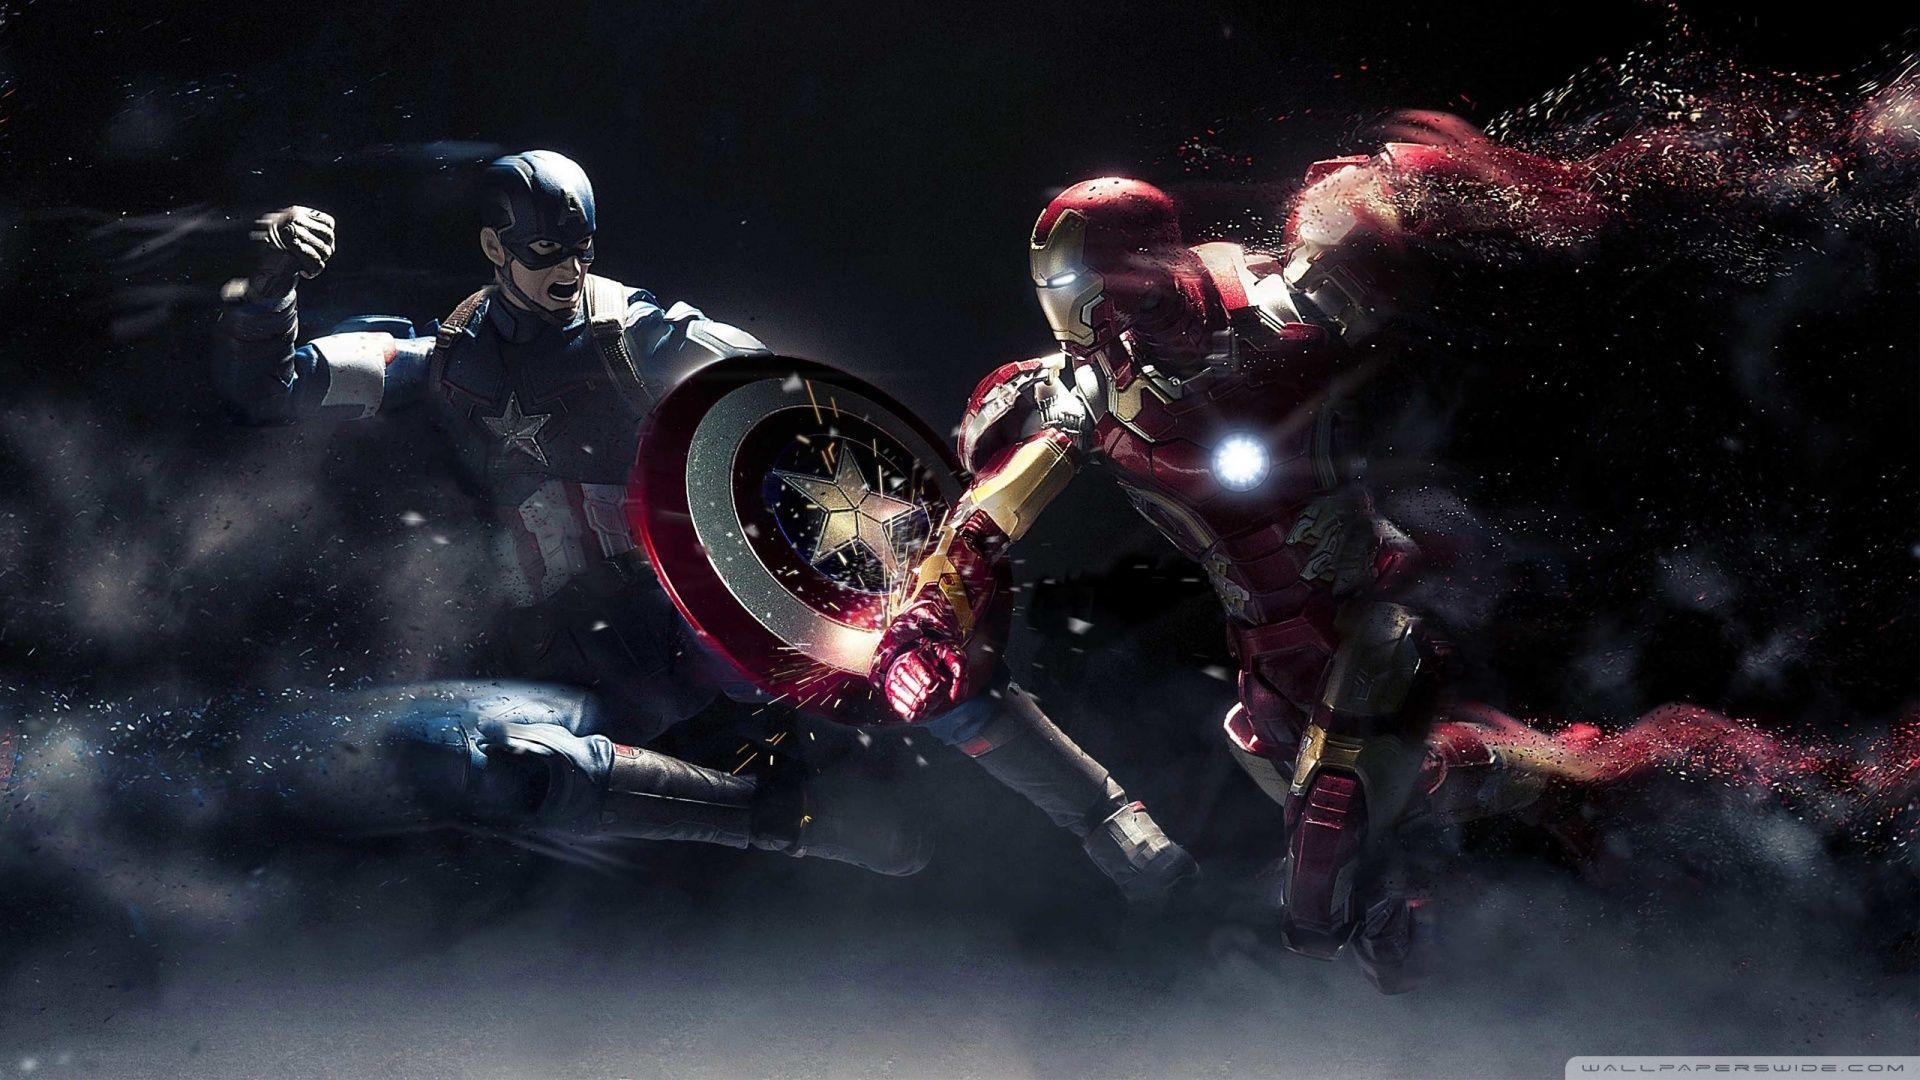 Iron Man Desktop Wallpaper Captain America Vs Iron Man ❤ 4K Hd ..